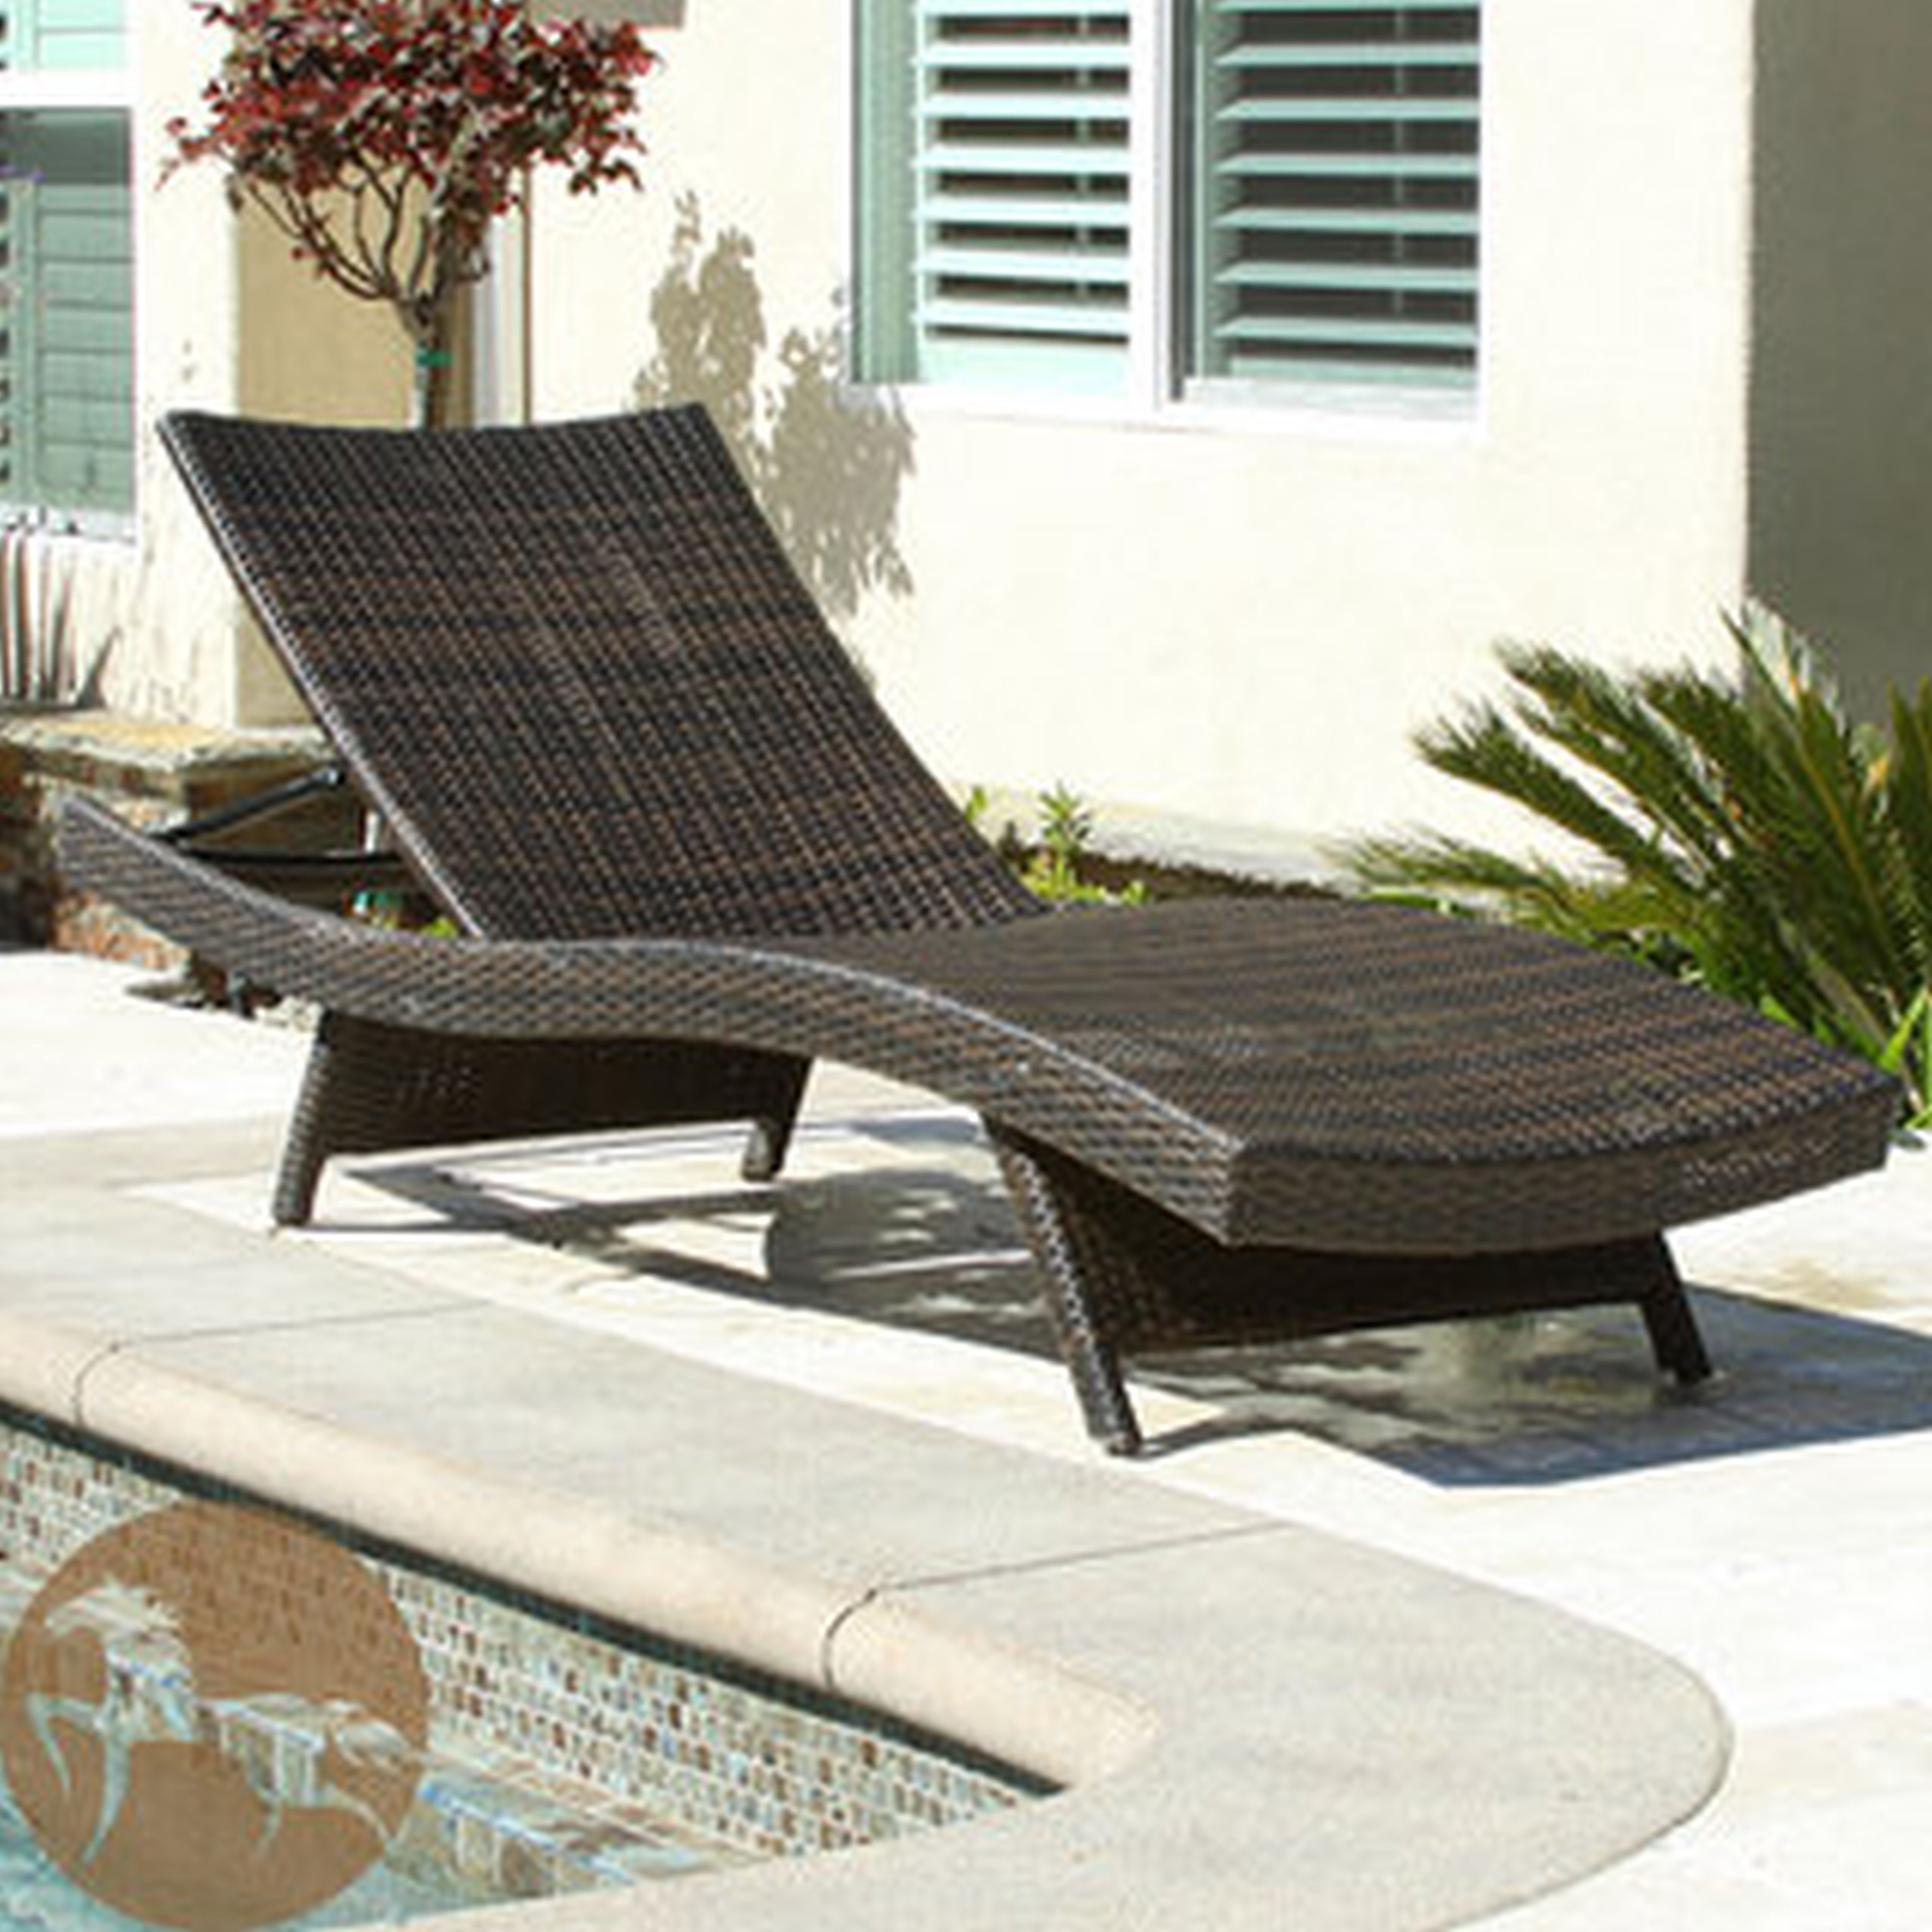 Hotel Pool Chaise Lounge Chairs Within Current Hotel Pool Chaise Lounge Chairs • Lounge Chairs Ideas (View 9 of 15)